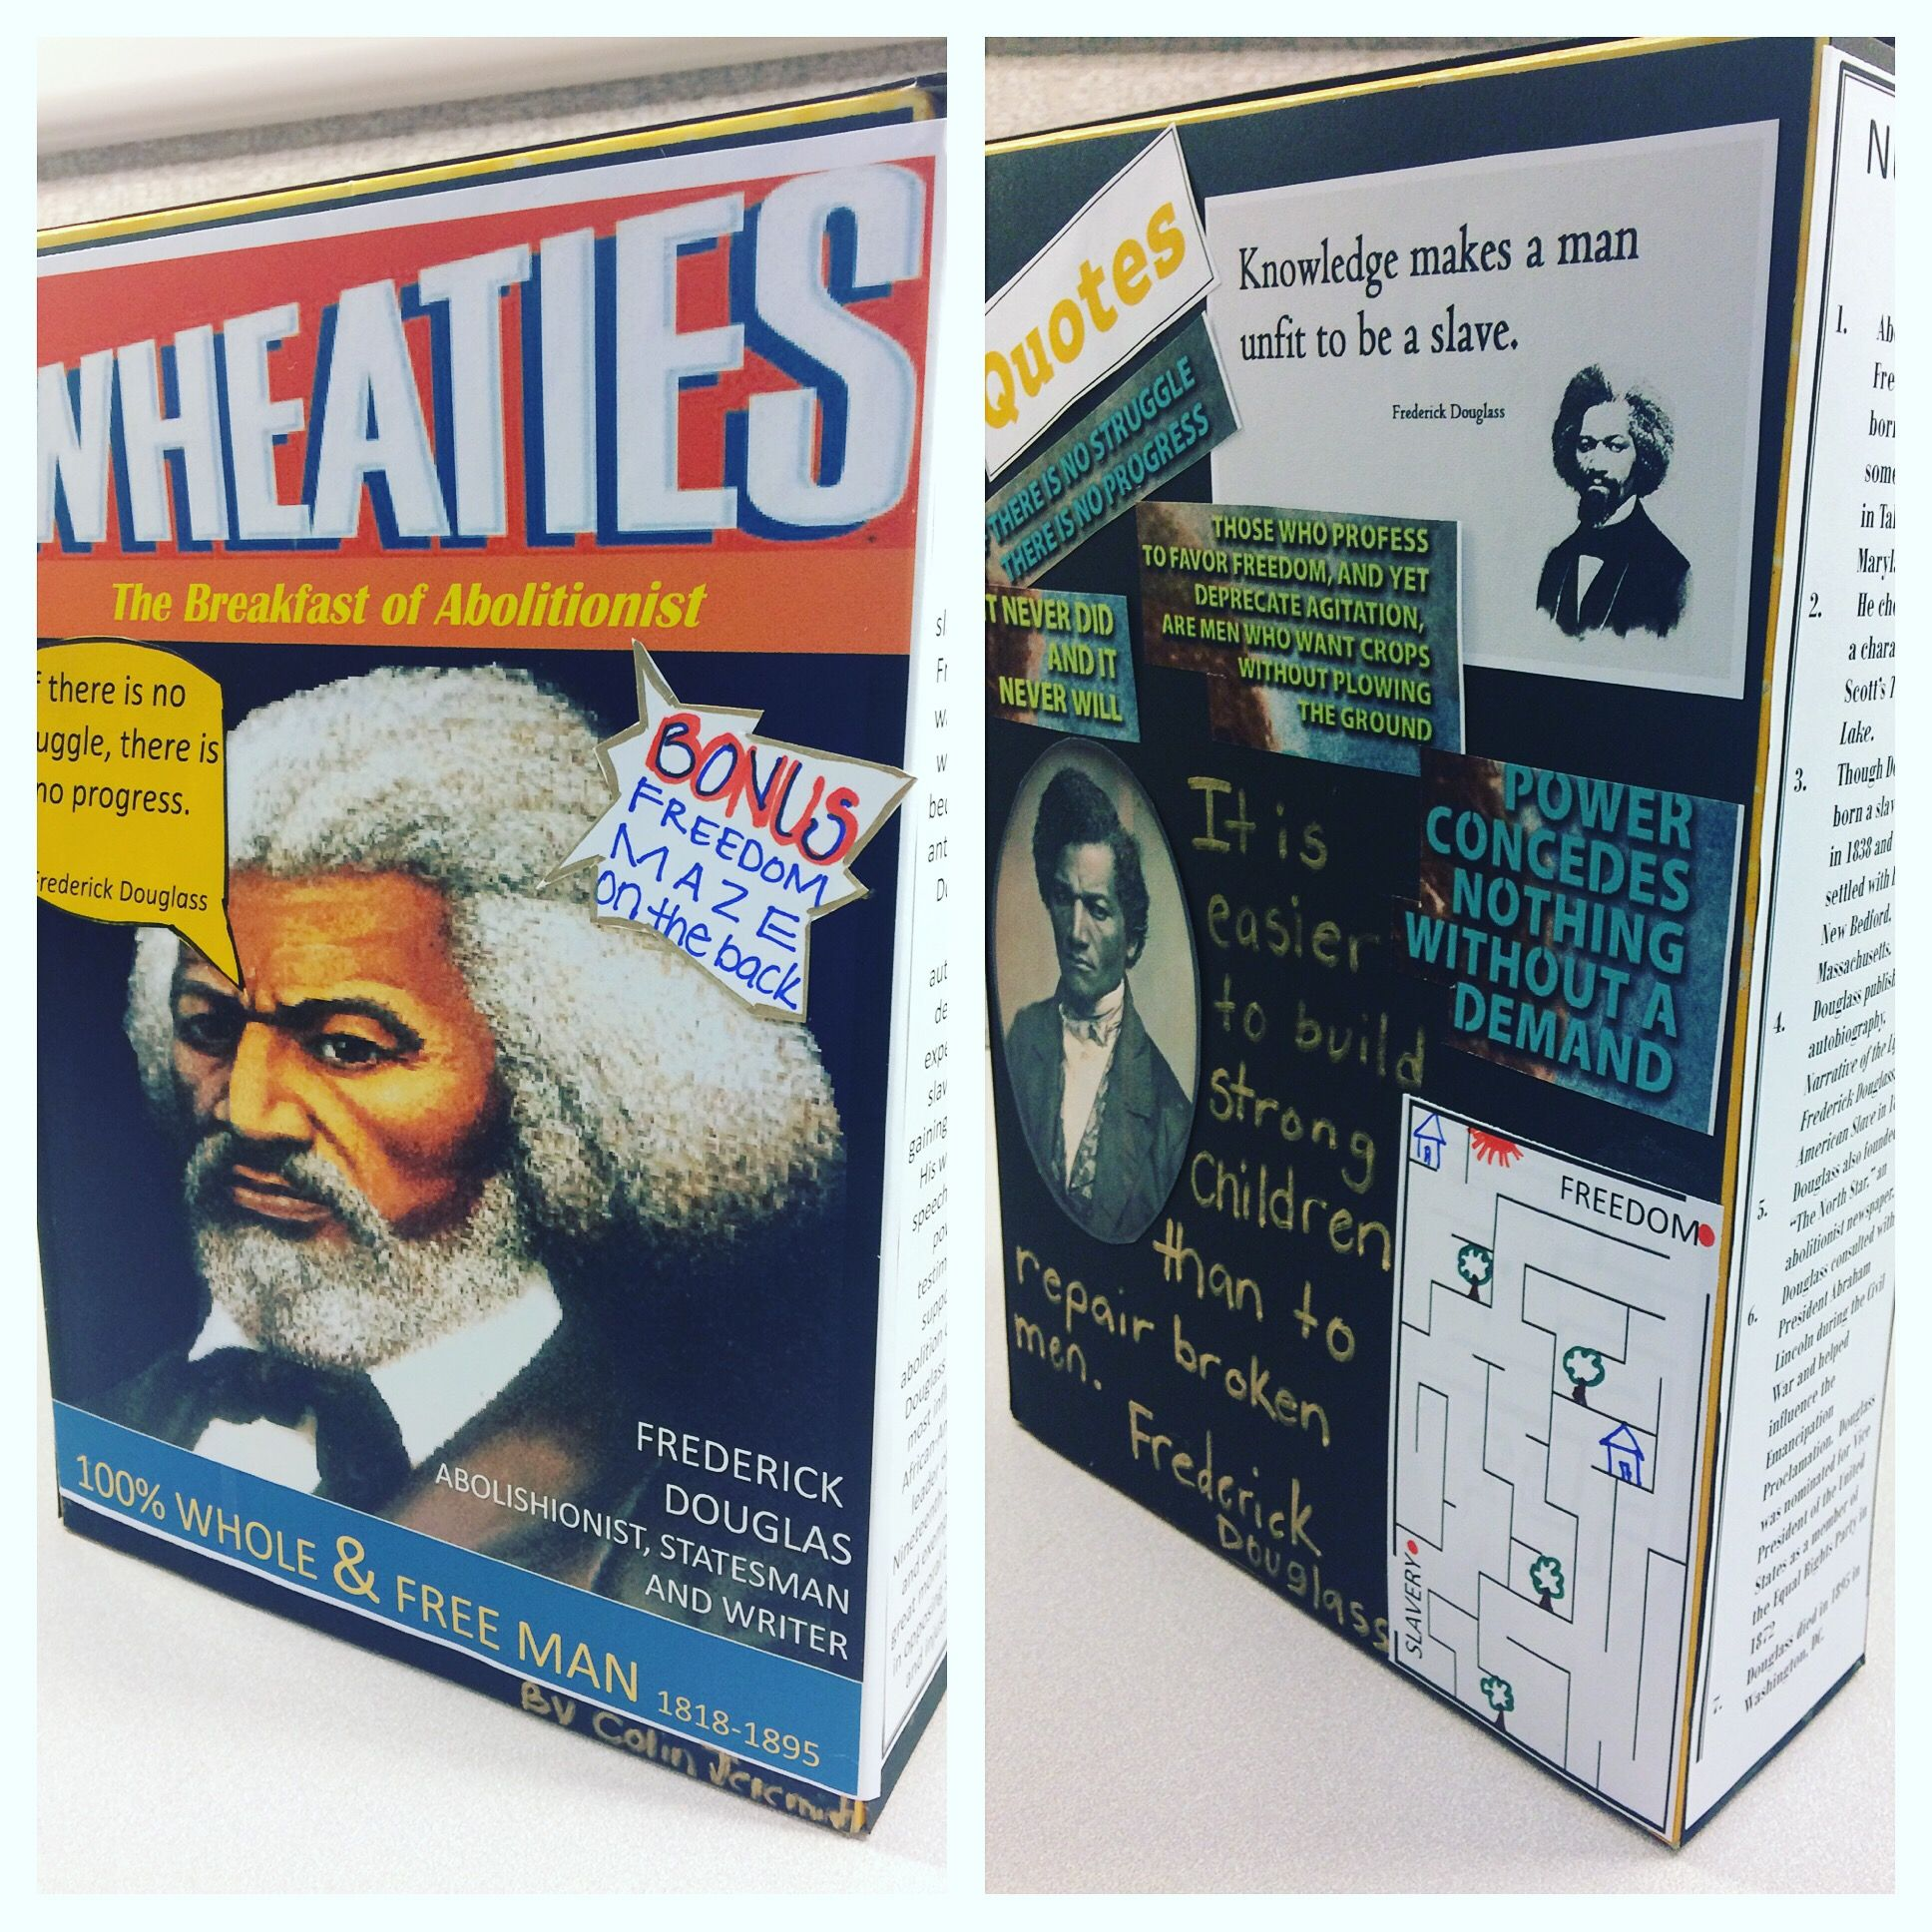 #colinsproject #cerealbox #bookreport #biography #frederickdouglass